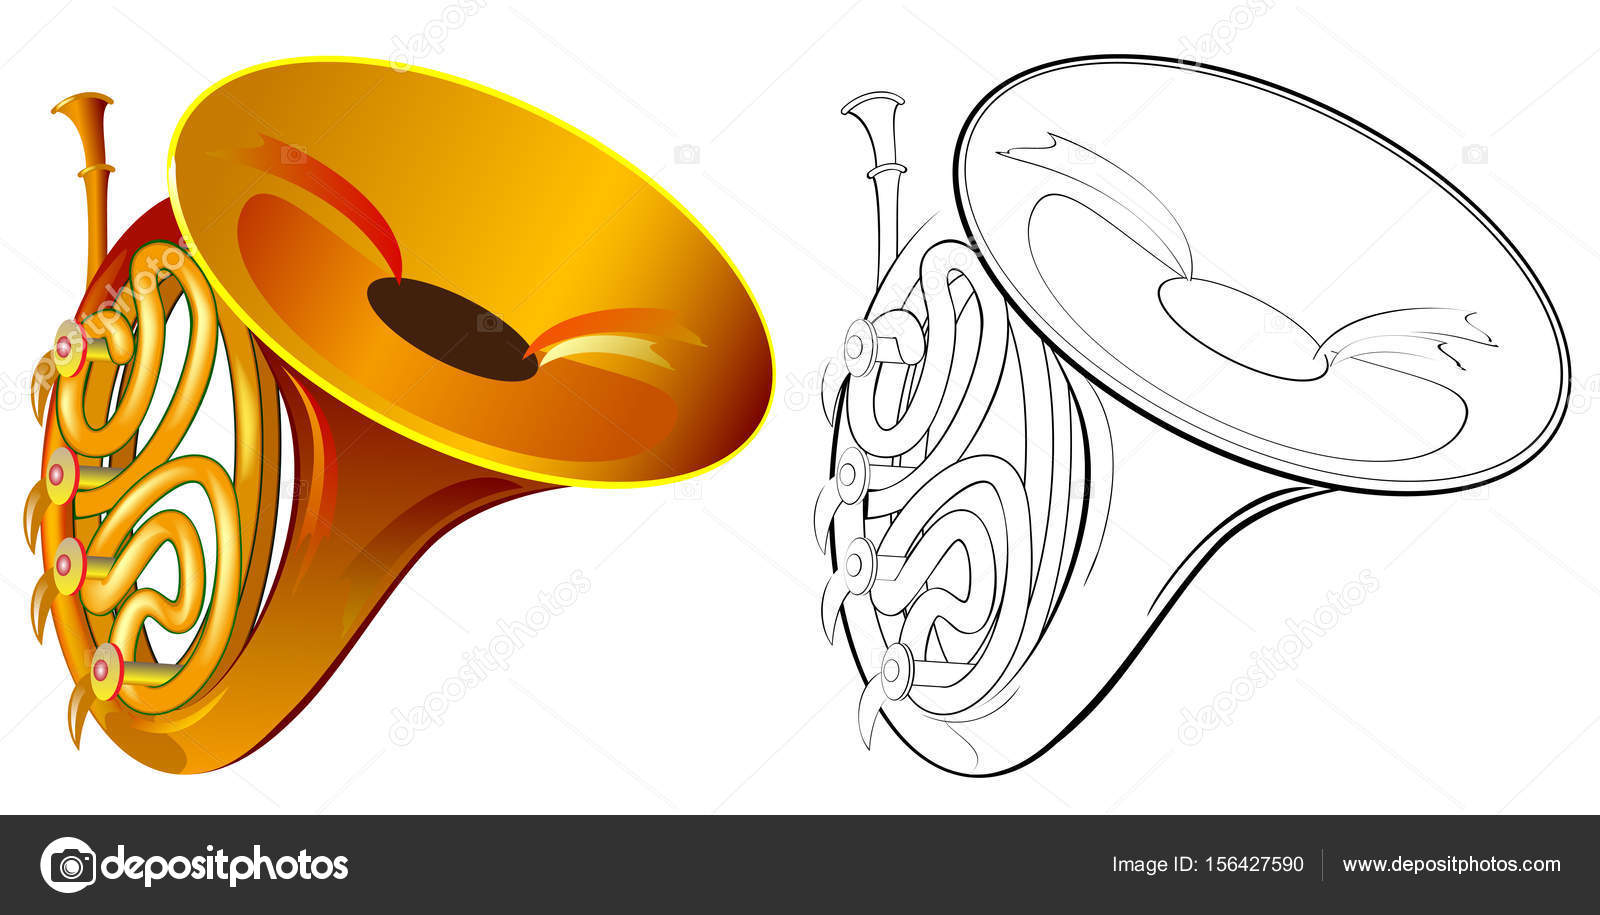 1600x915 Colorful And Black And White Drawing Of French Horn. Worksheet